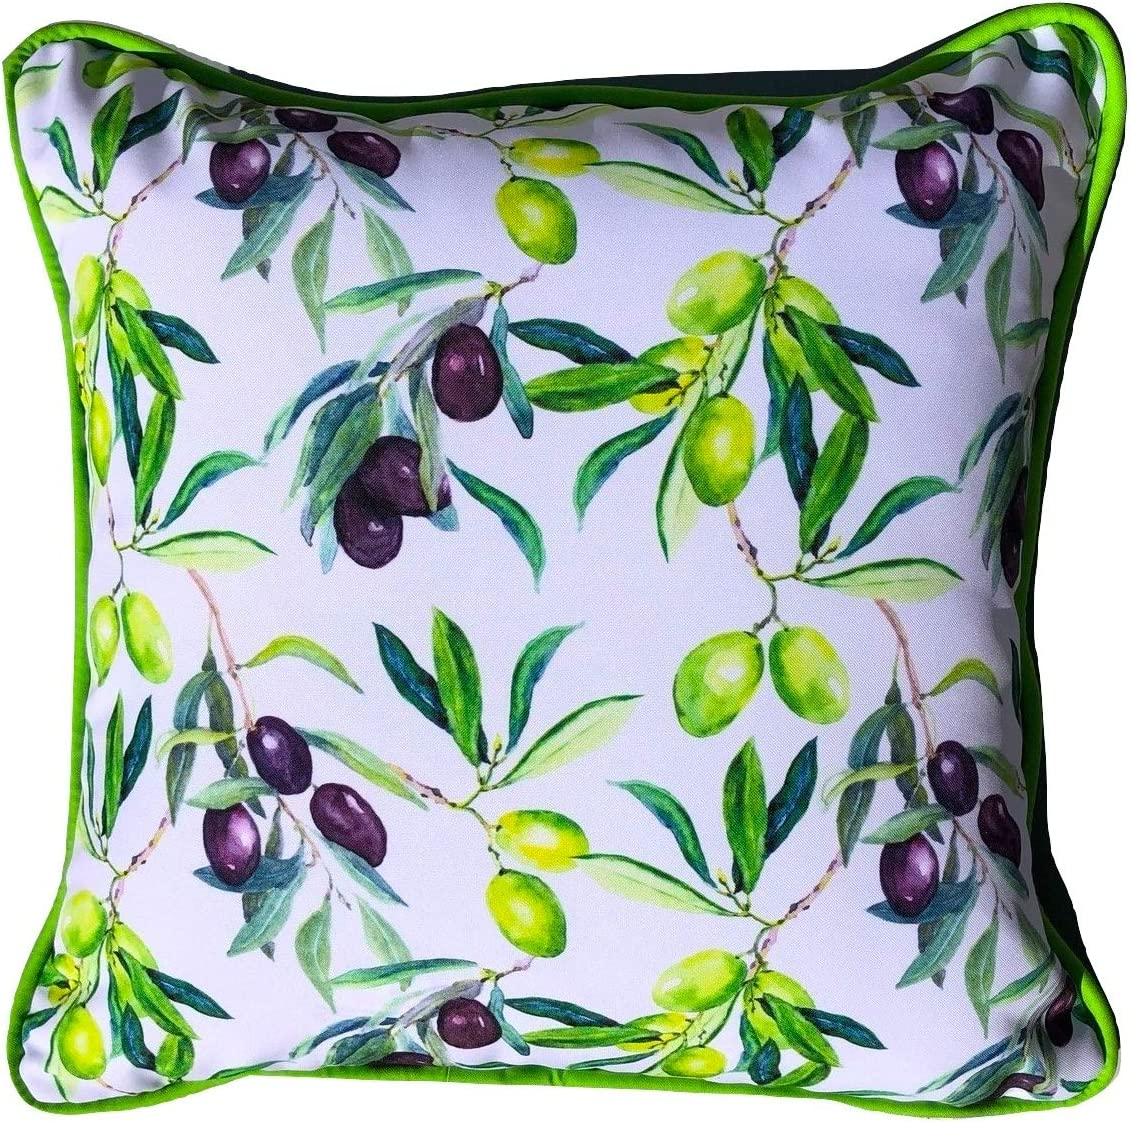 Sea By Day Solana Beach Outdoor Pillows or Decorative Throw Pillows for Couch- Accent Pillows for Patio Furniture Cushions 20×20 Olive The Above